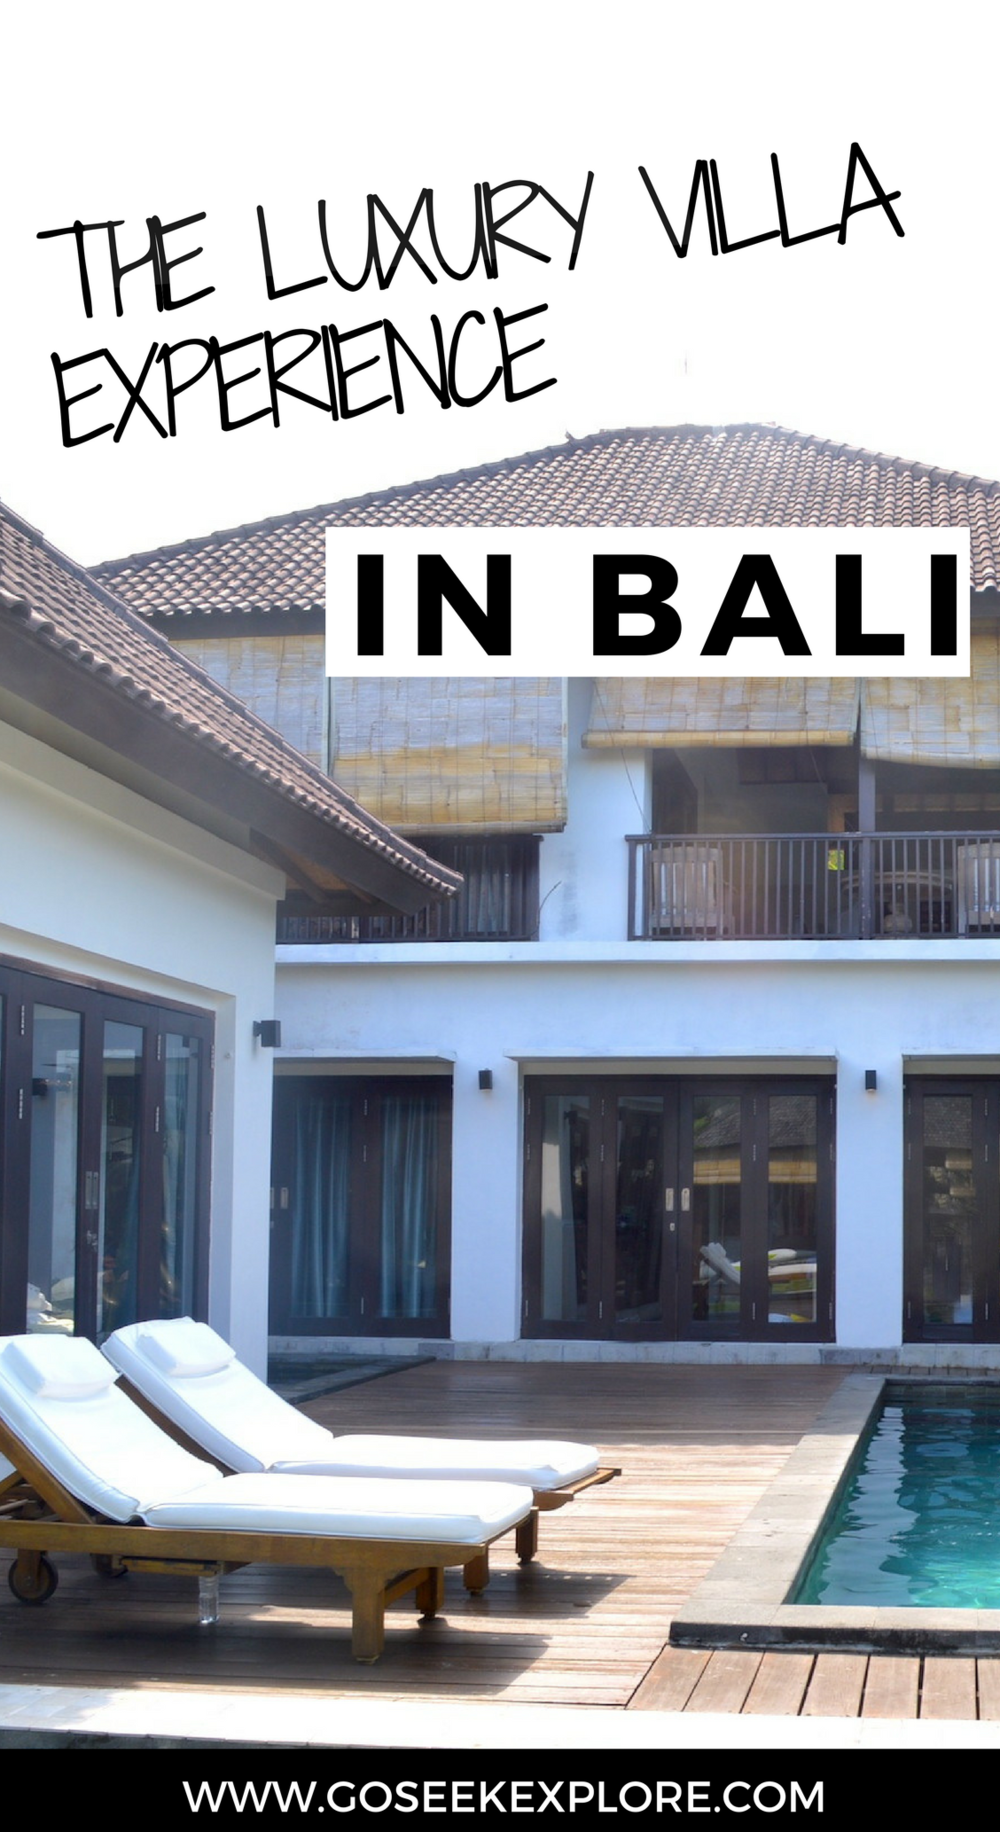 The luxury villa experience in Bali - affordable luxury travel options for groups, digital nomads, friends, and families